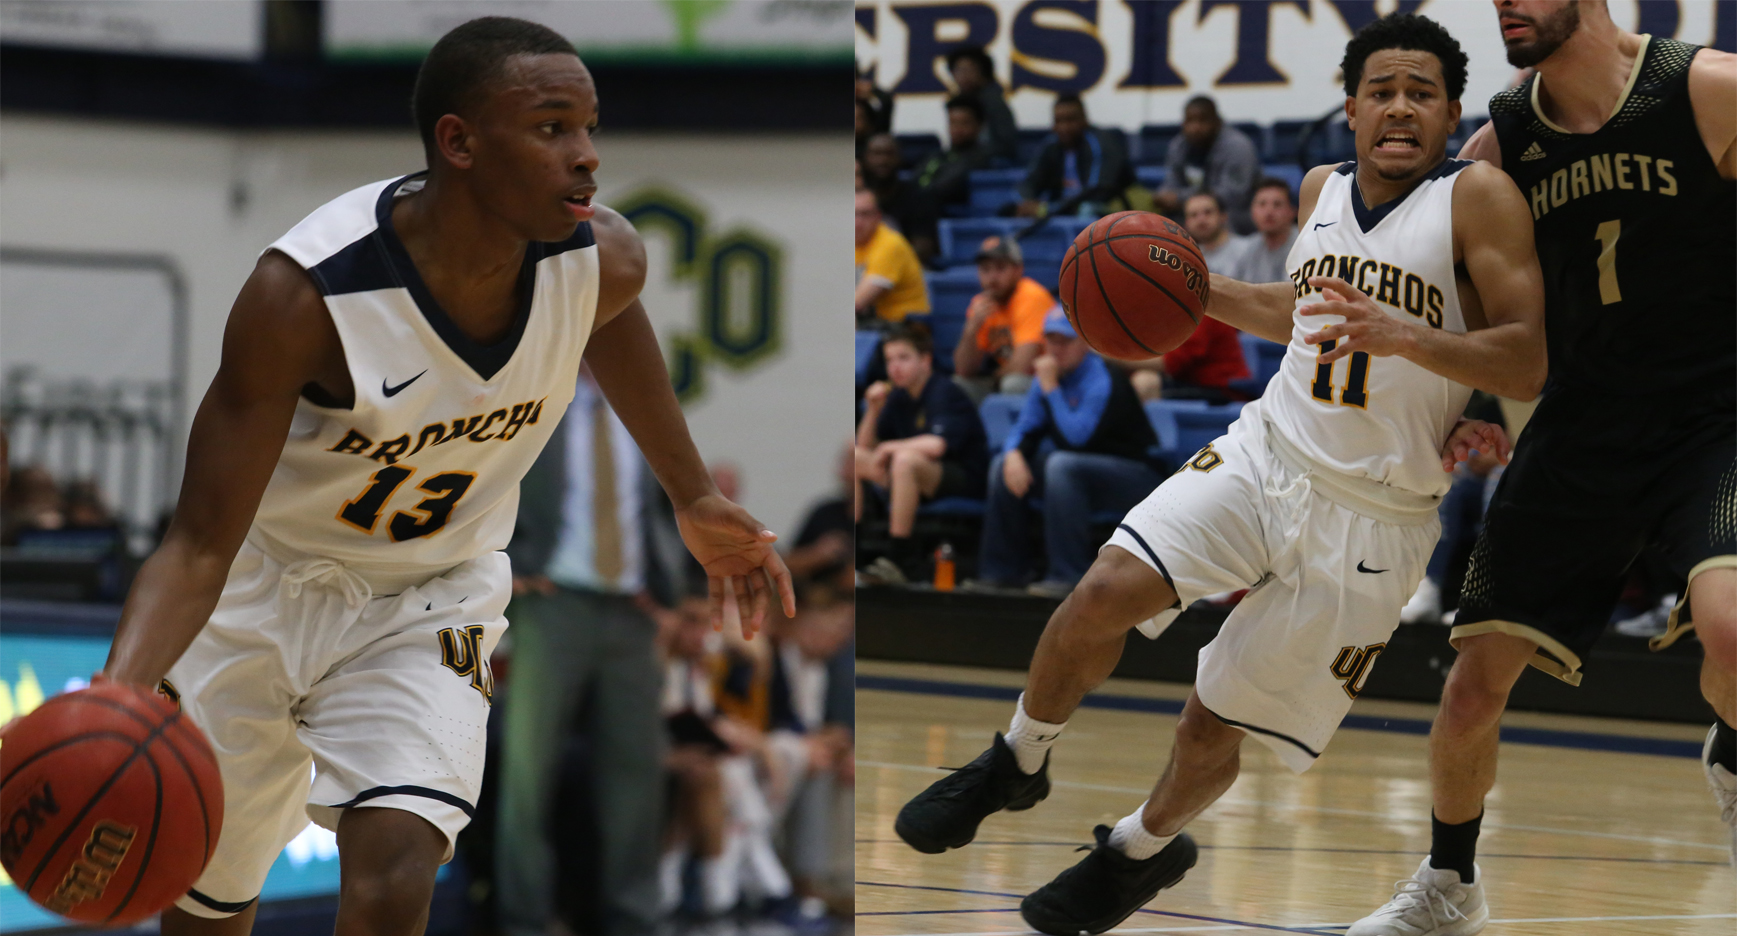 UCO Basketball's Outstanding Backcourt: Guards Josh Holliday and Marquis Johnson